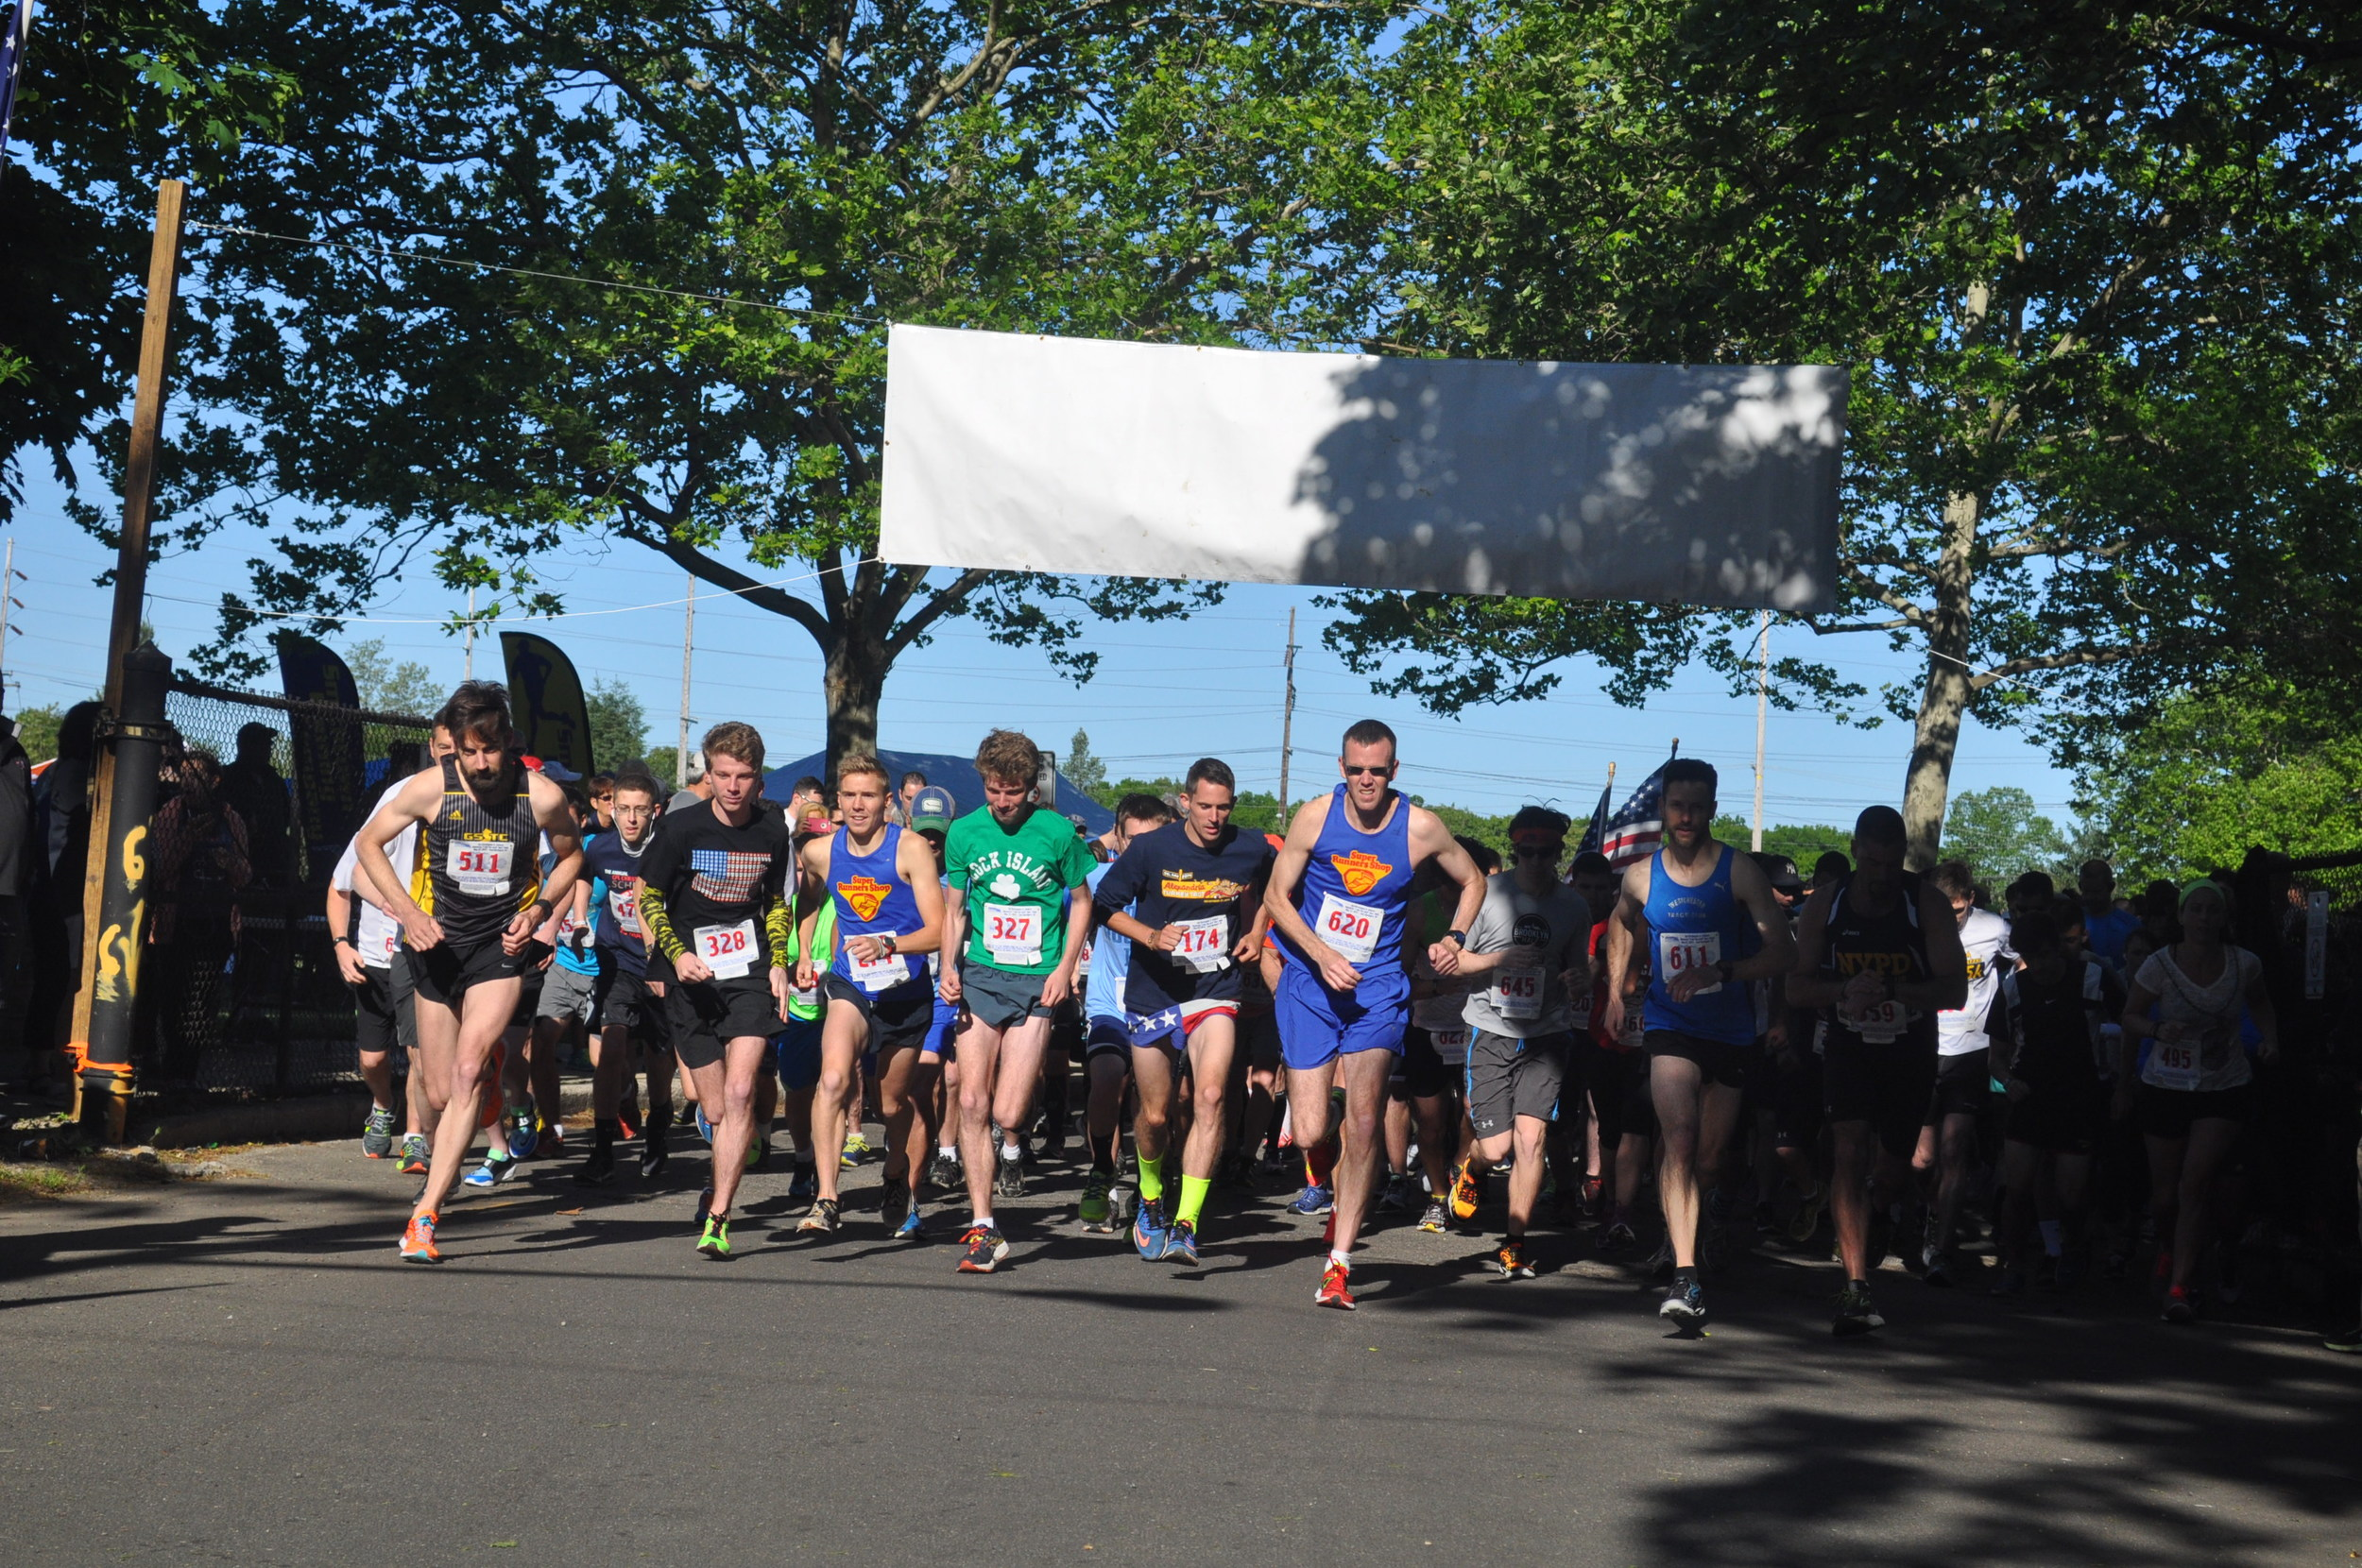 And they're off! A total of 1,378 participated in the Scherer run's three races on Saturday morning.